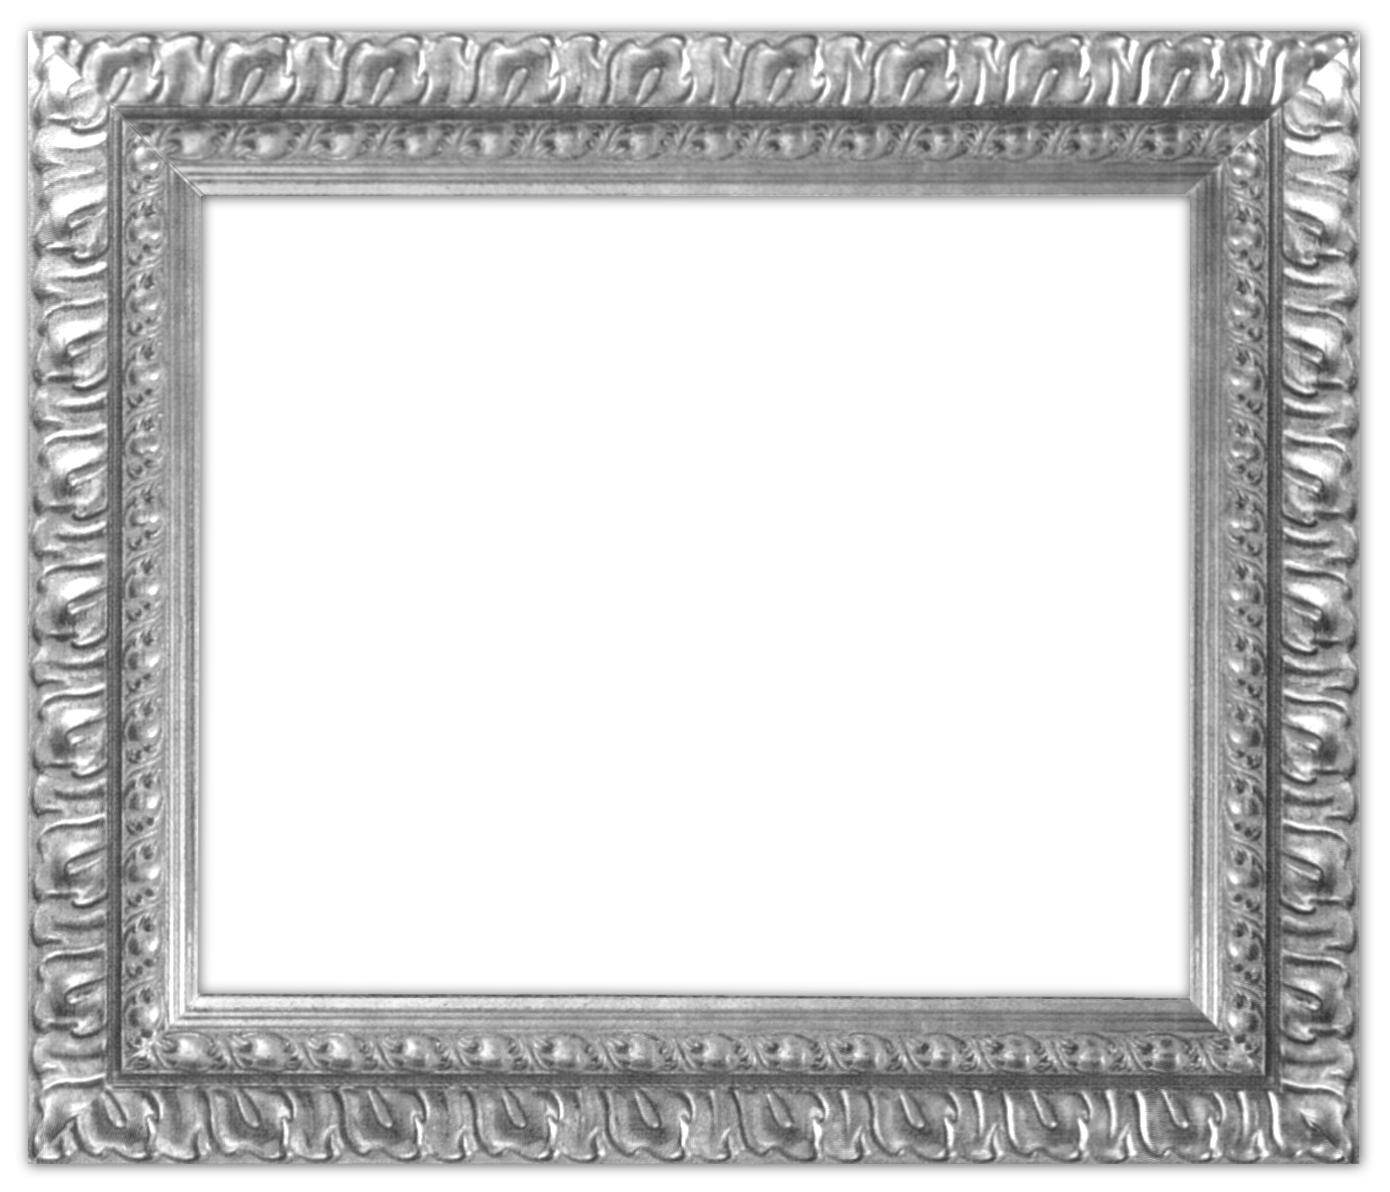 Silver frame png. Picture frames manufacturing antique